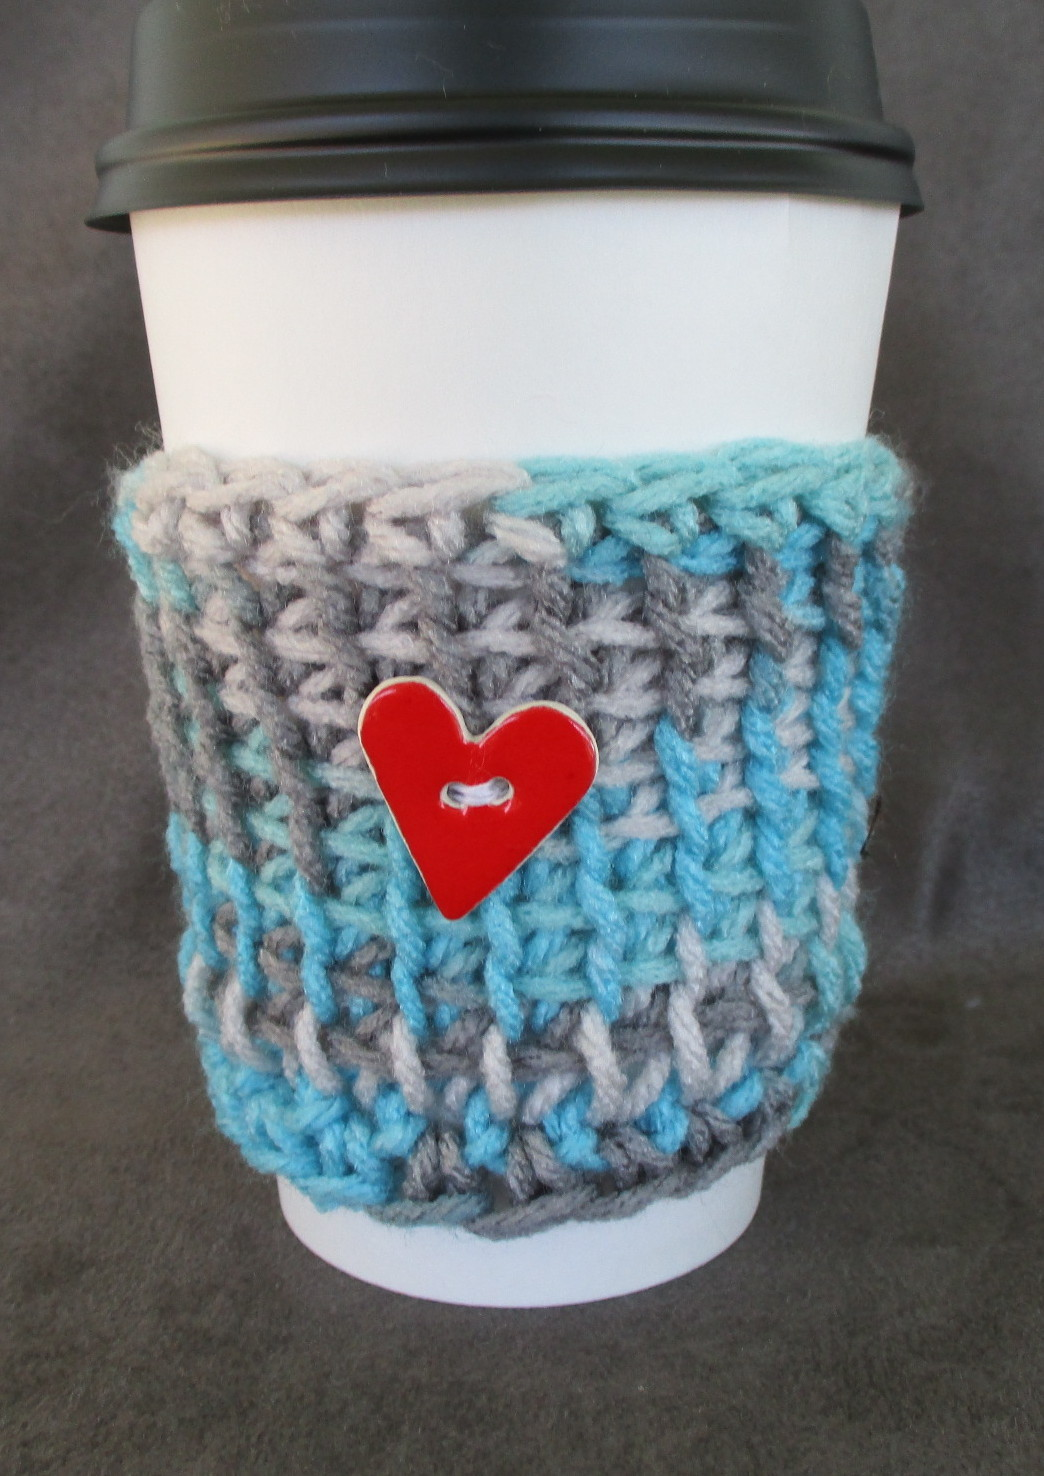 To Go Cup Cozy Sleeve in aqua blue and gray with heart button